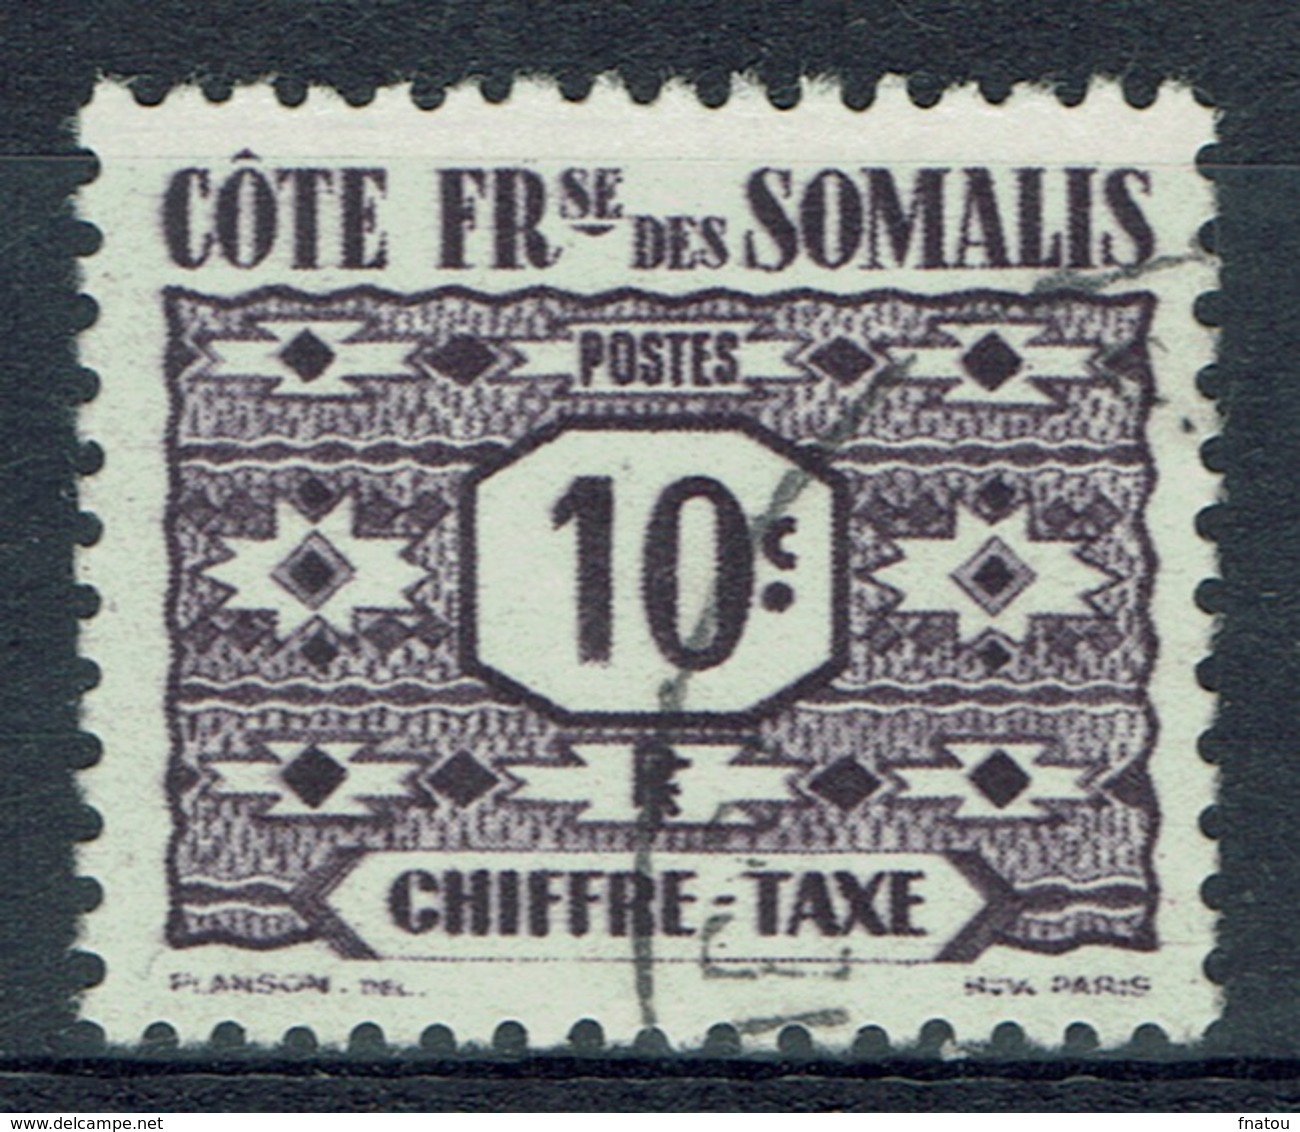 French Somali Coast, 10c., Postage Due, 1947, VFU - Used Stamps